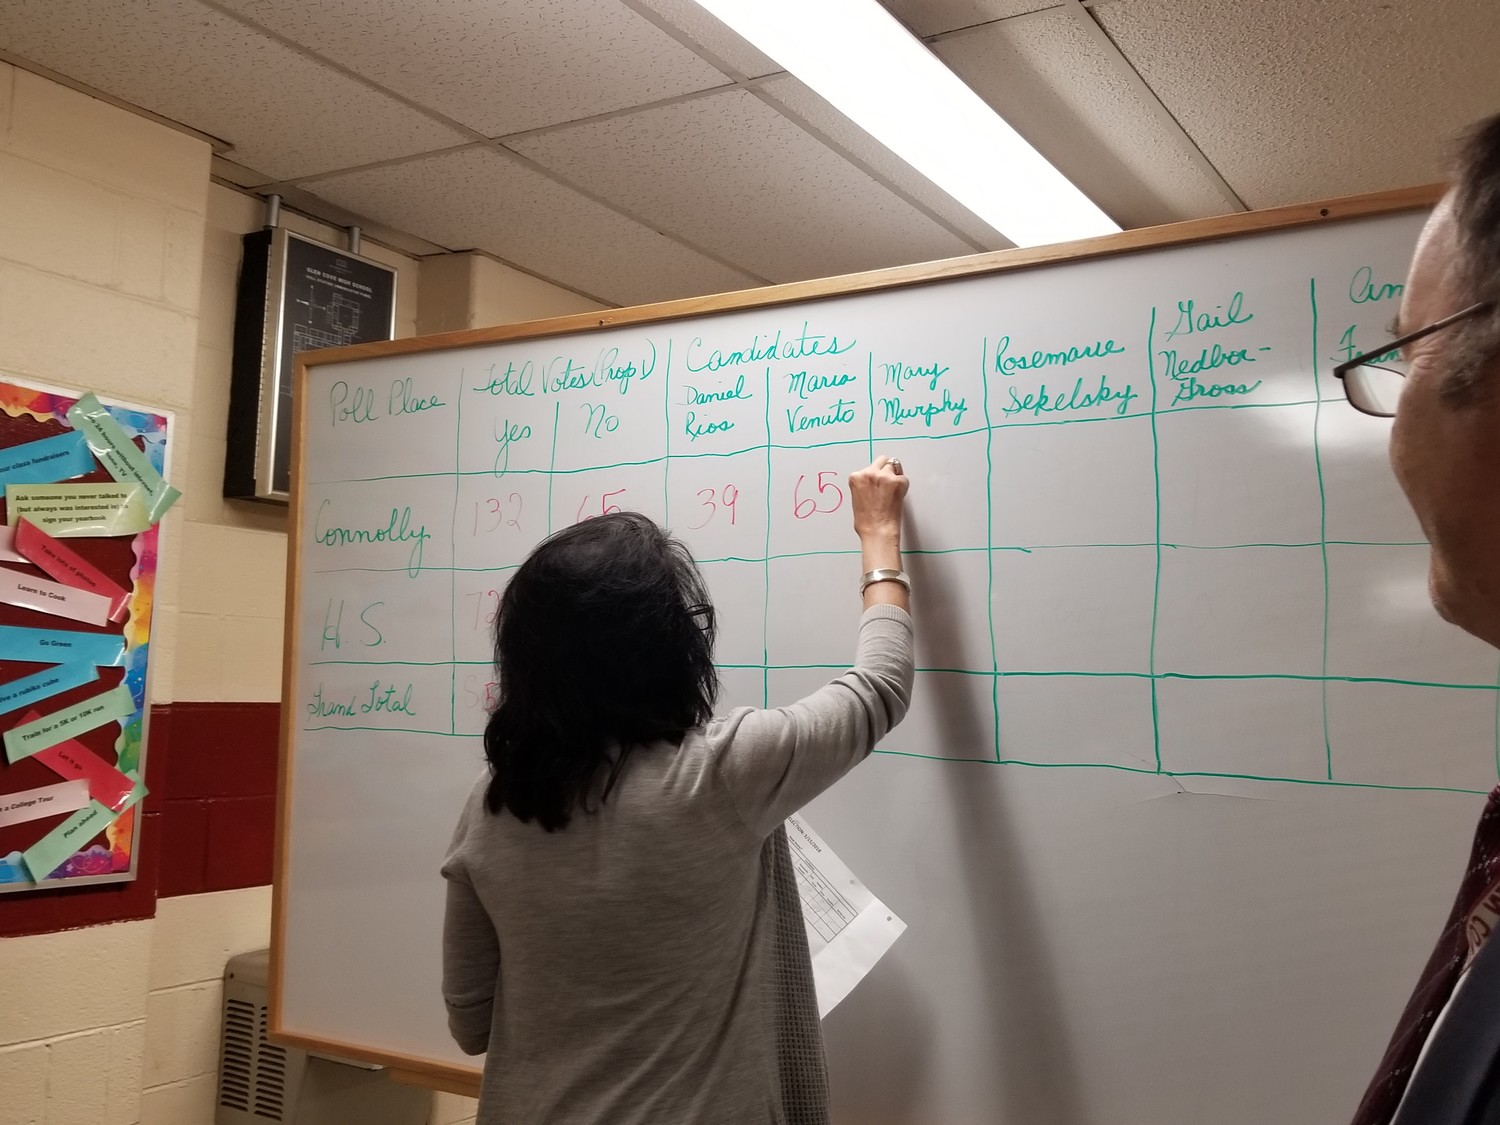 Superintendent Maria Rianna tallied up the votes on a whiteboard in the hallway of the Glen Cove High School while candidates and their families watched in silent anticipation.